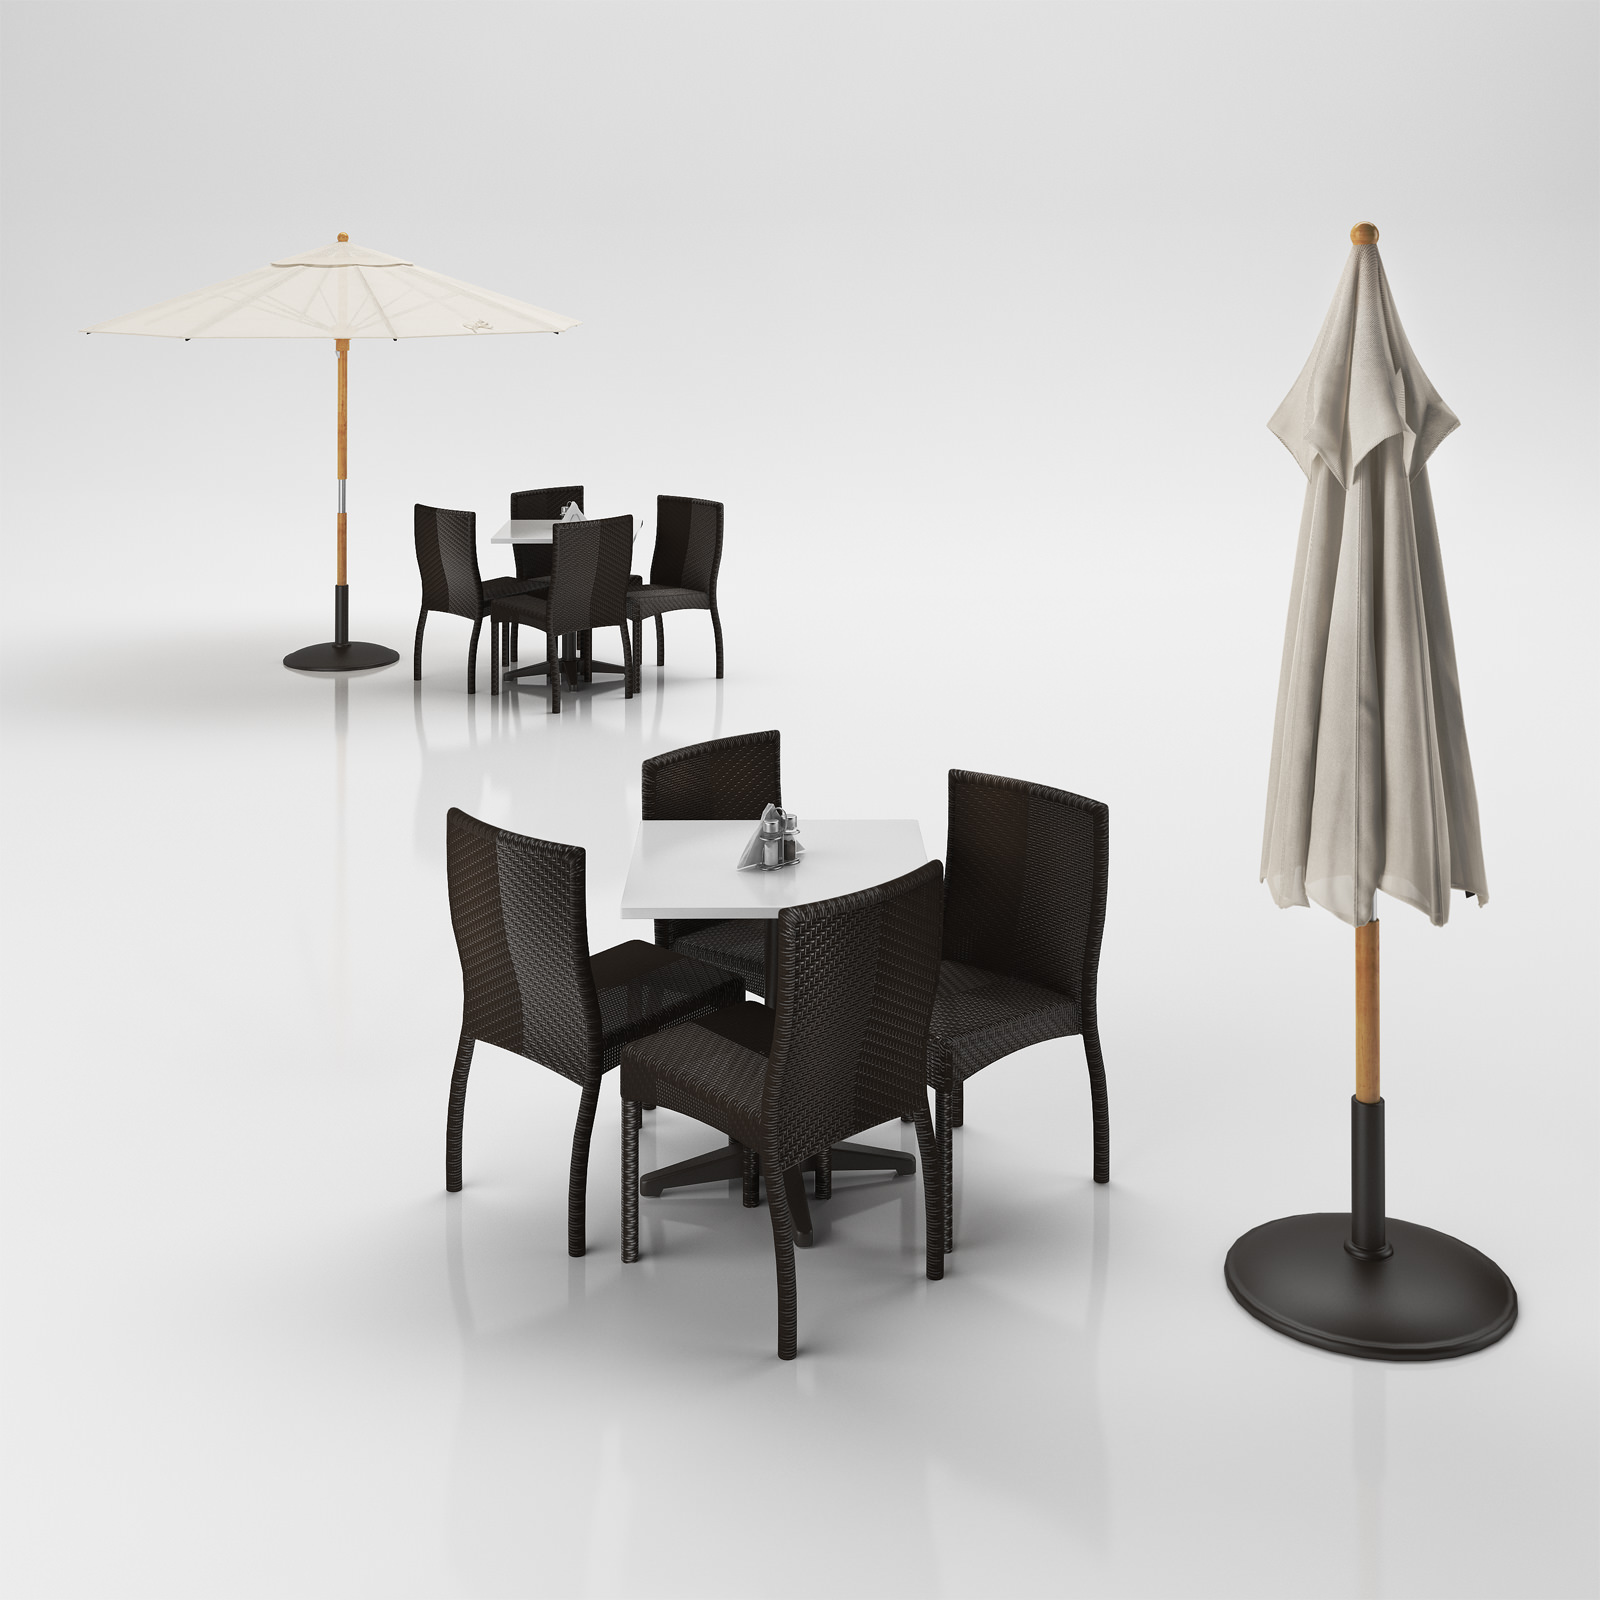 Rattan Chairs Set with Table and Outdoor Umbrella 3D model MAX OBJ